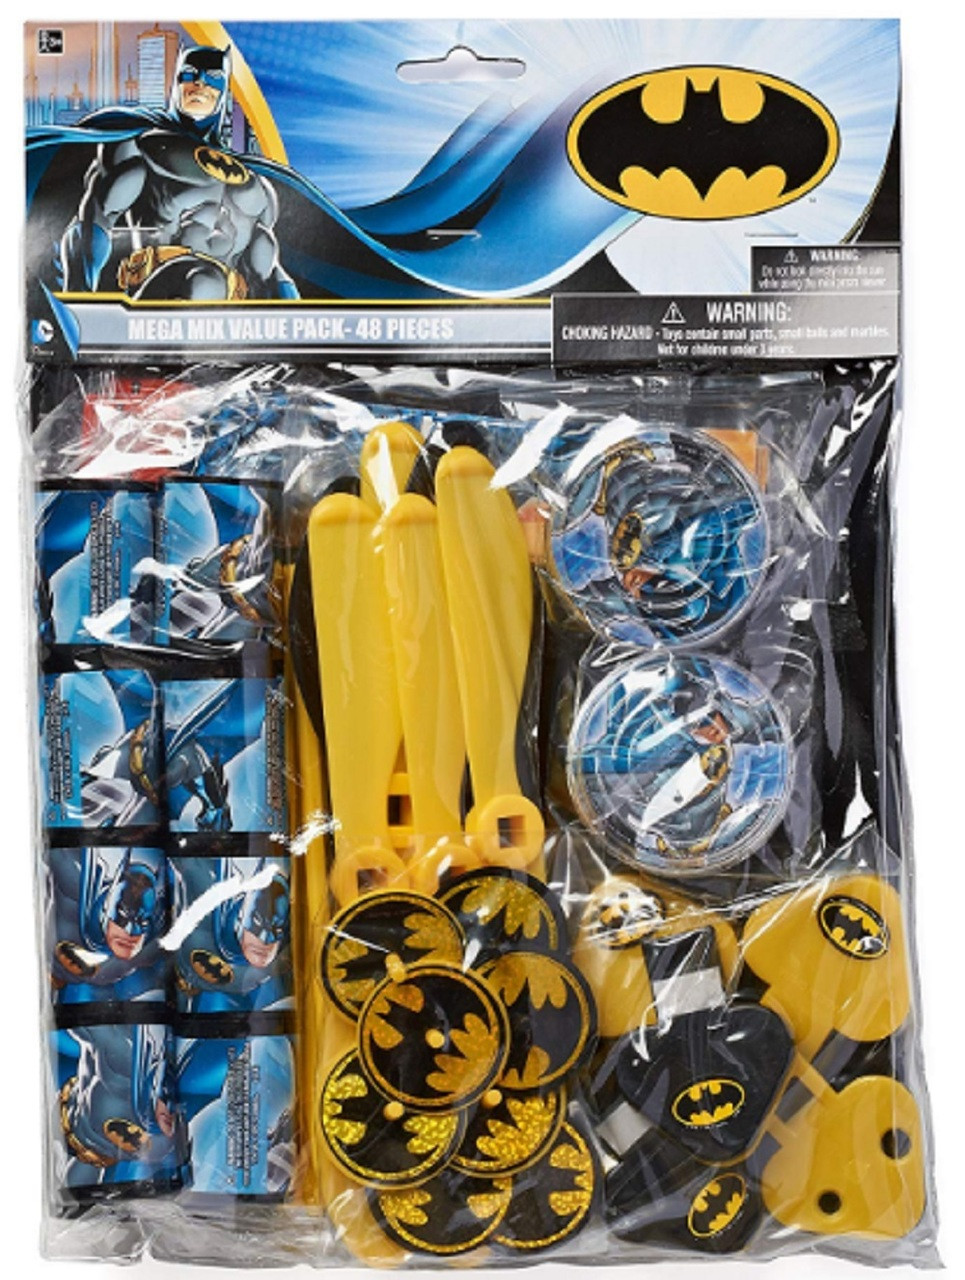 Party Favors - Batman - Mega Mix Value Pack - 48pc Set